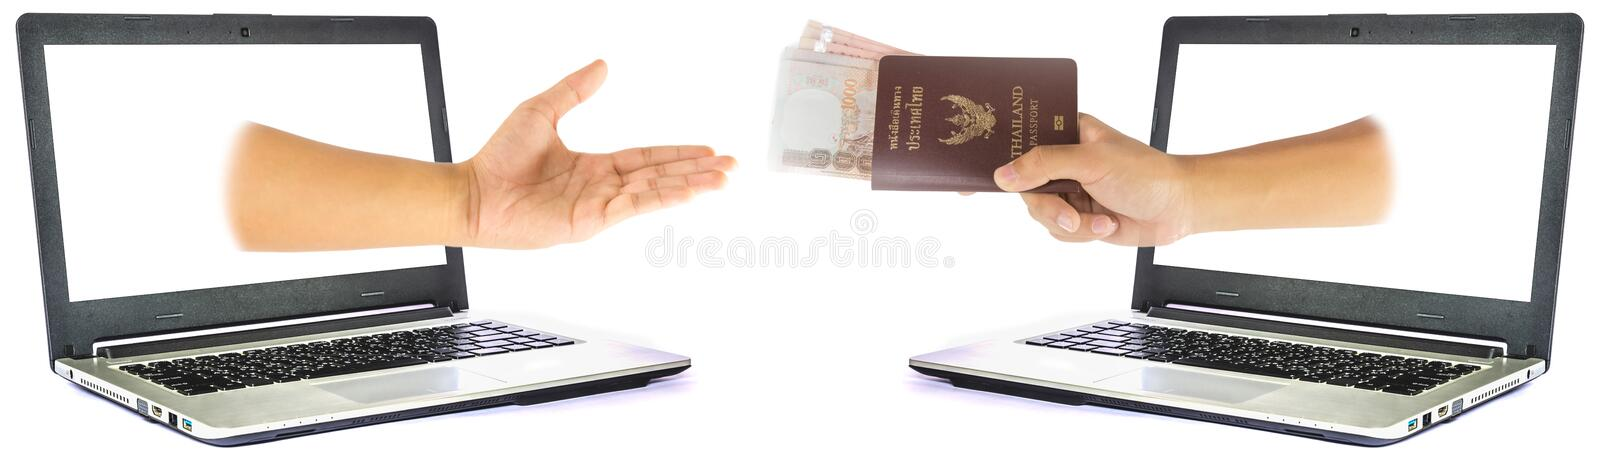 Download Thailand Passport And Money From Laptop Stock Photo - Image of money, online: 33355492